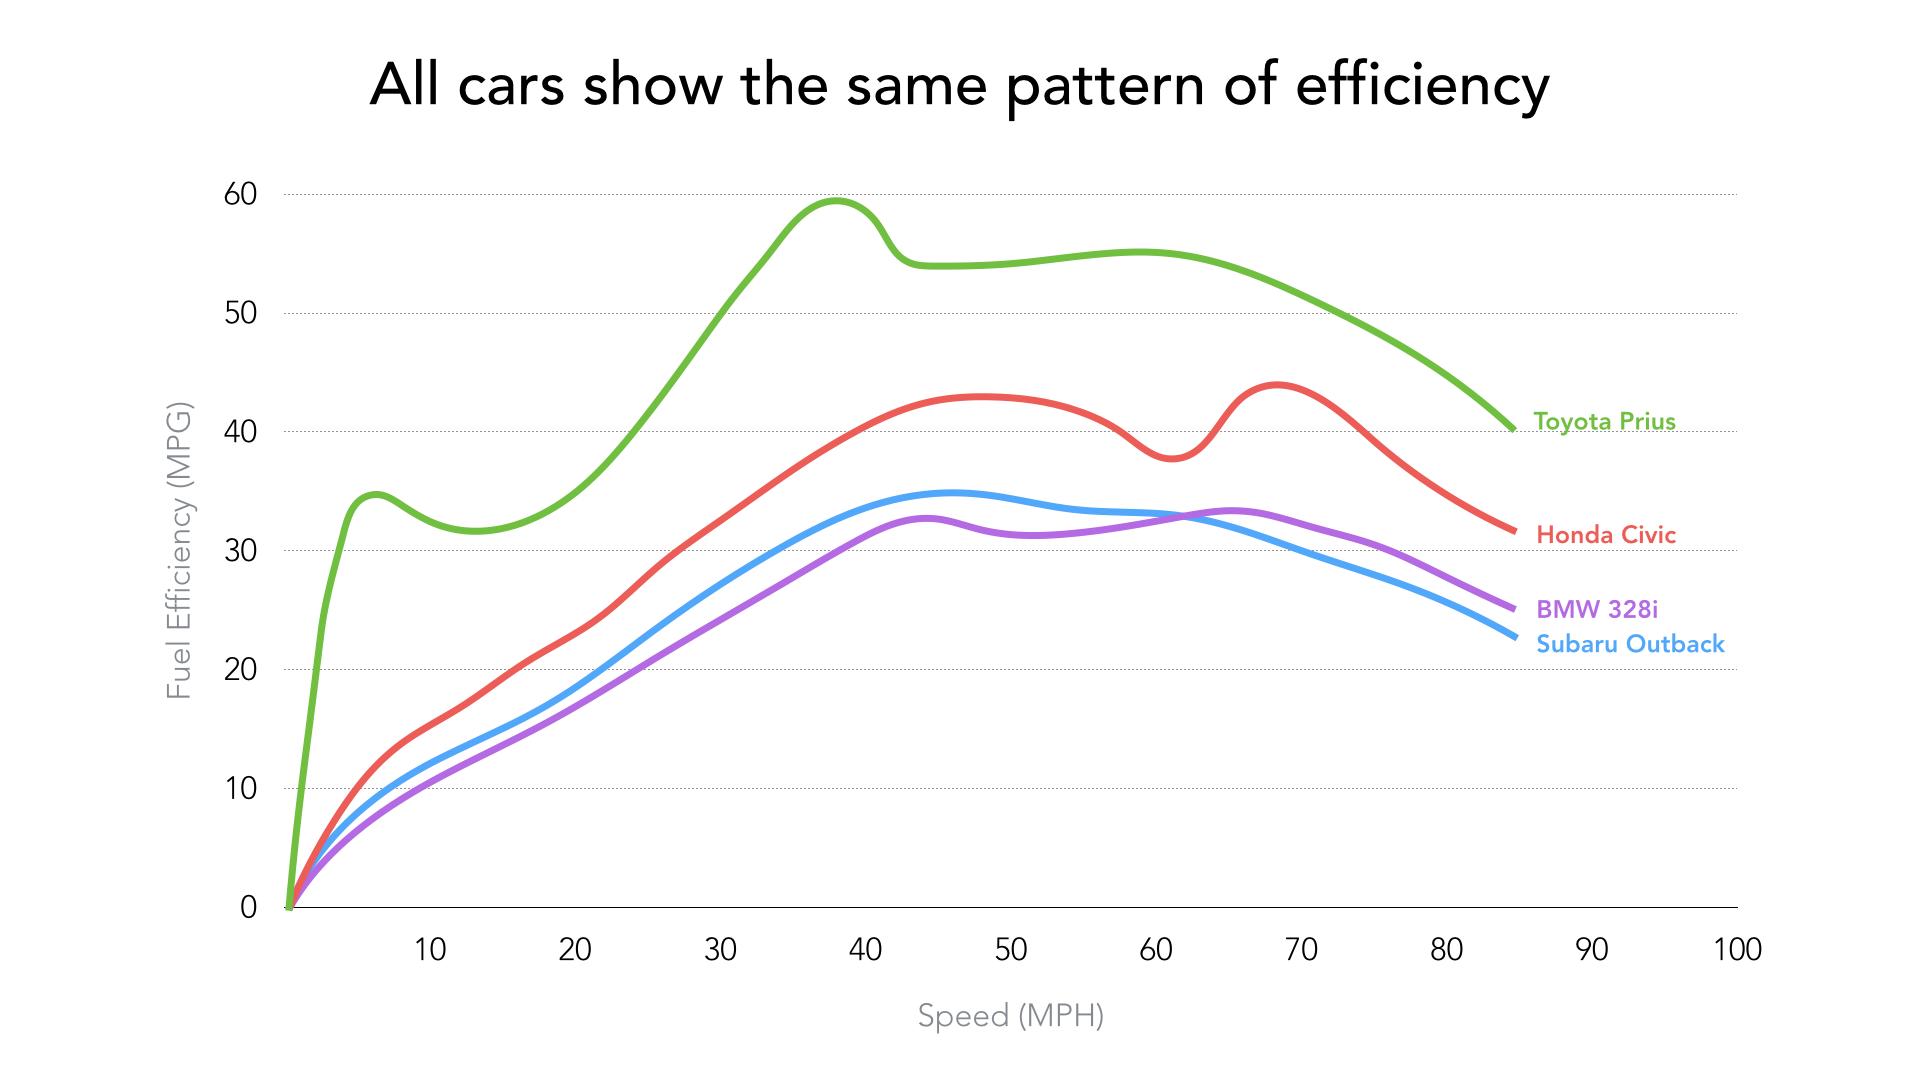 mpg-vs-speed-all.png